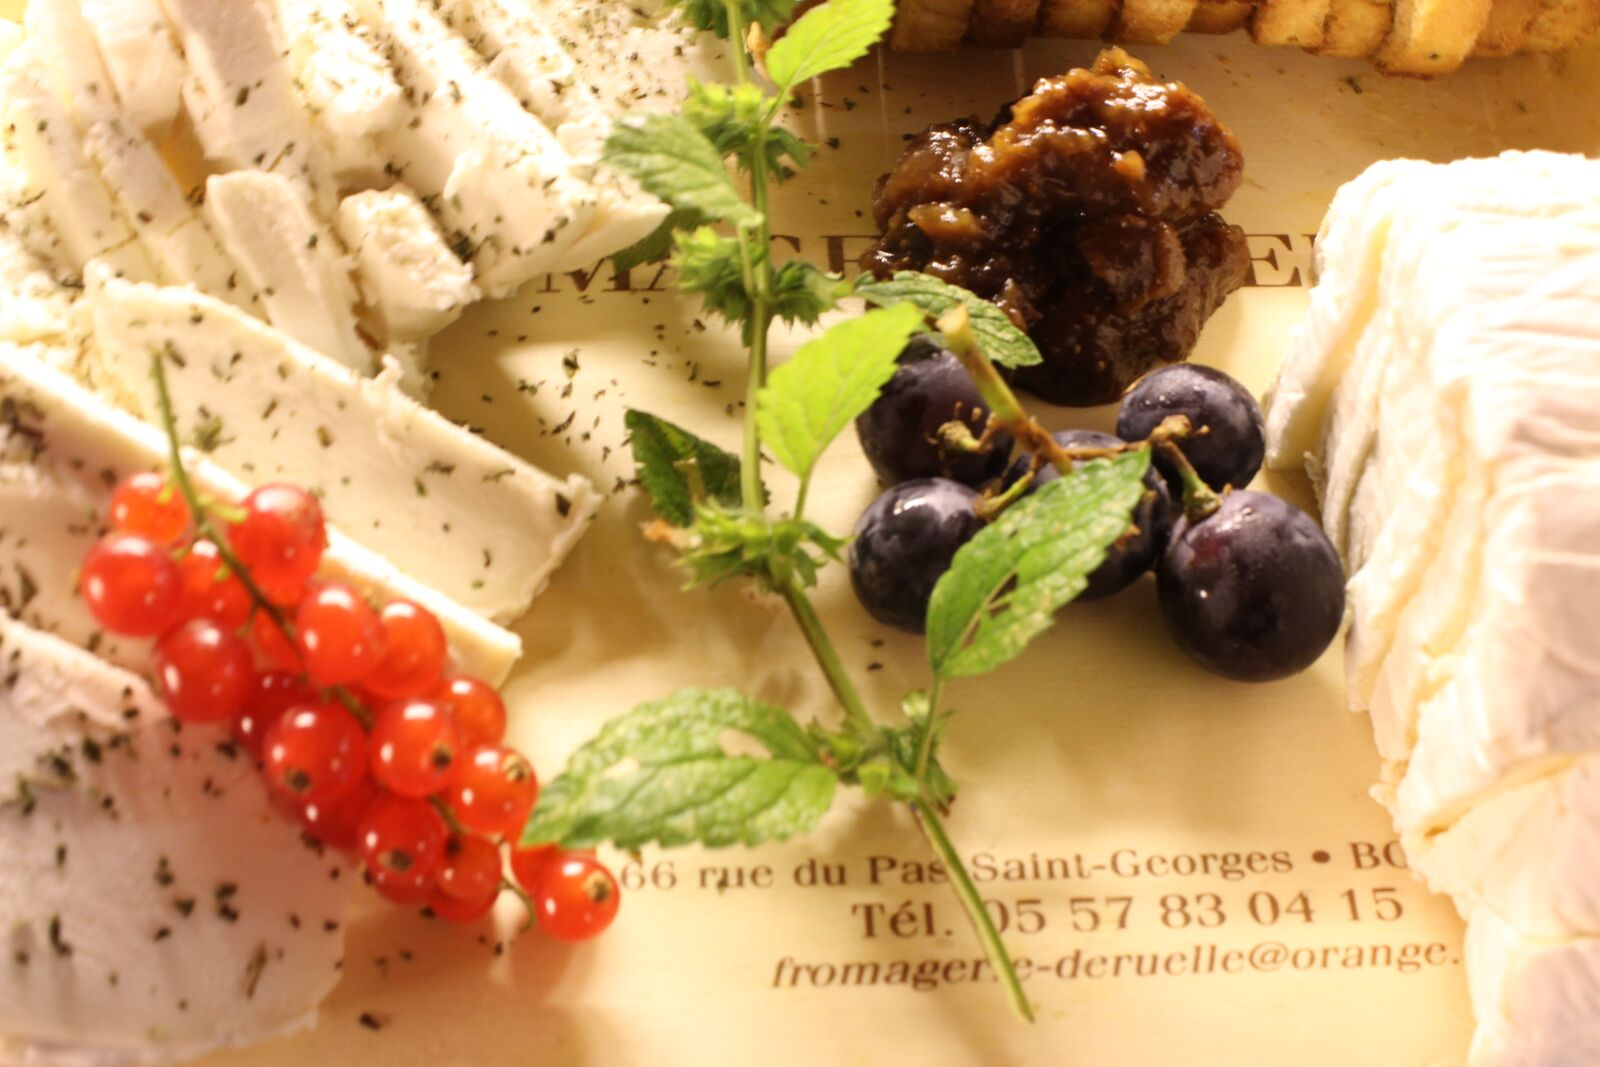 Grapes, Peppered Cheese, Onion Marmalade, Mint, Currants